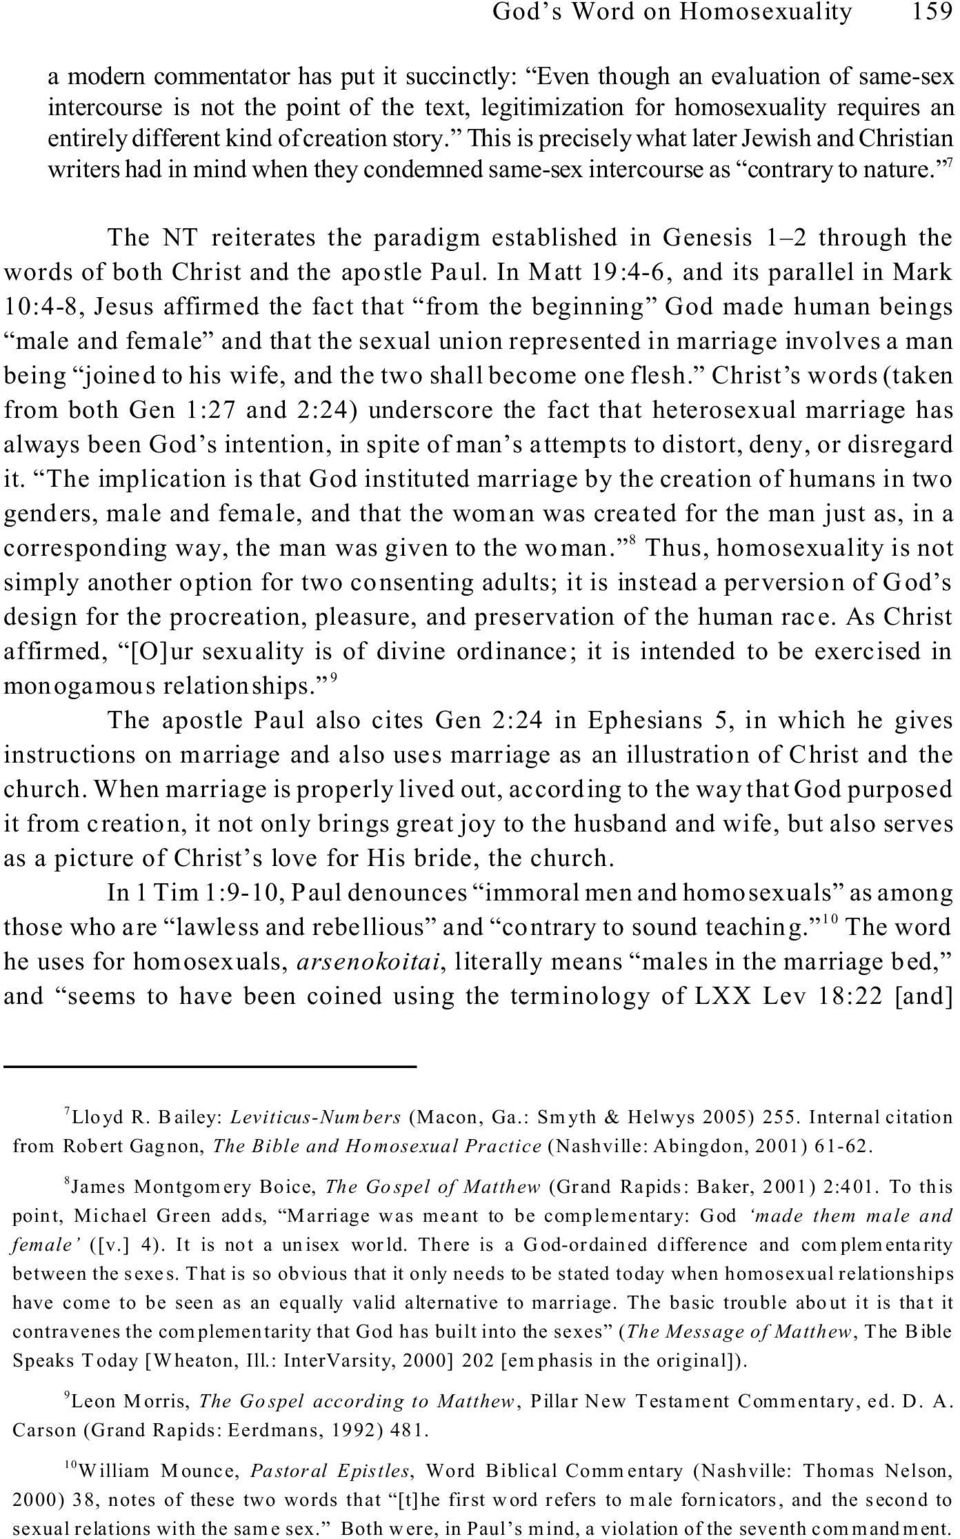 God s words on homosexuality and christianity